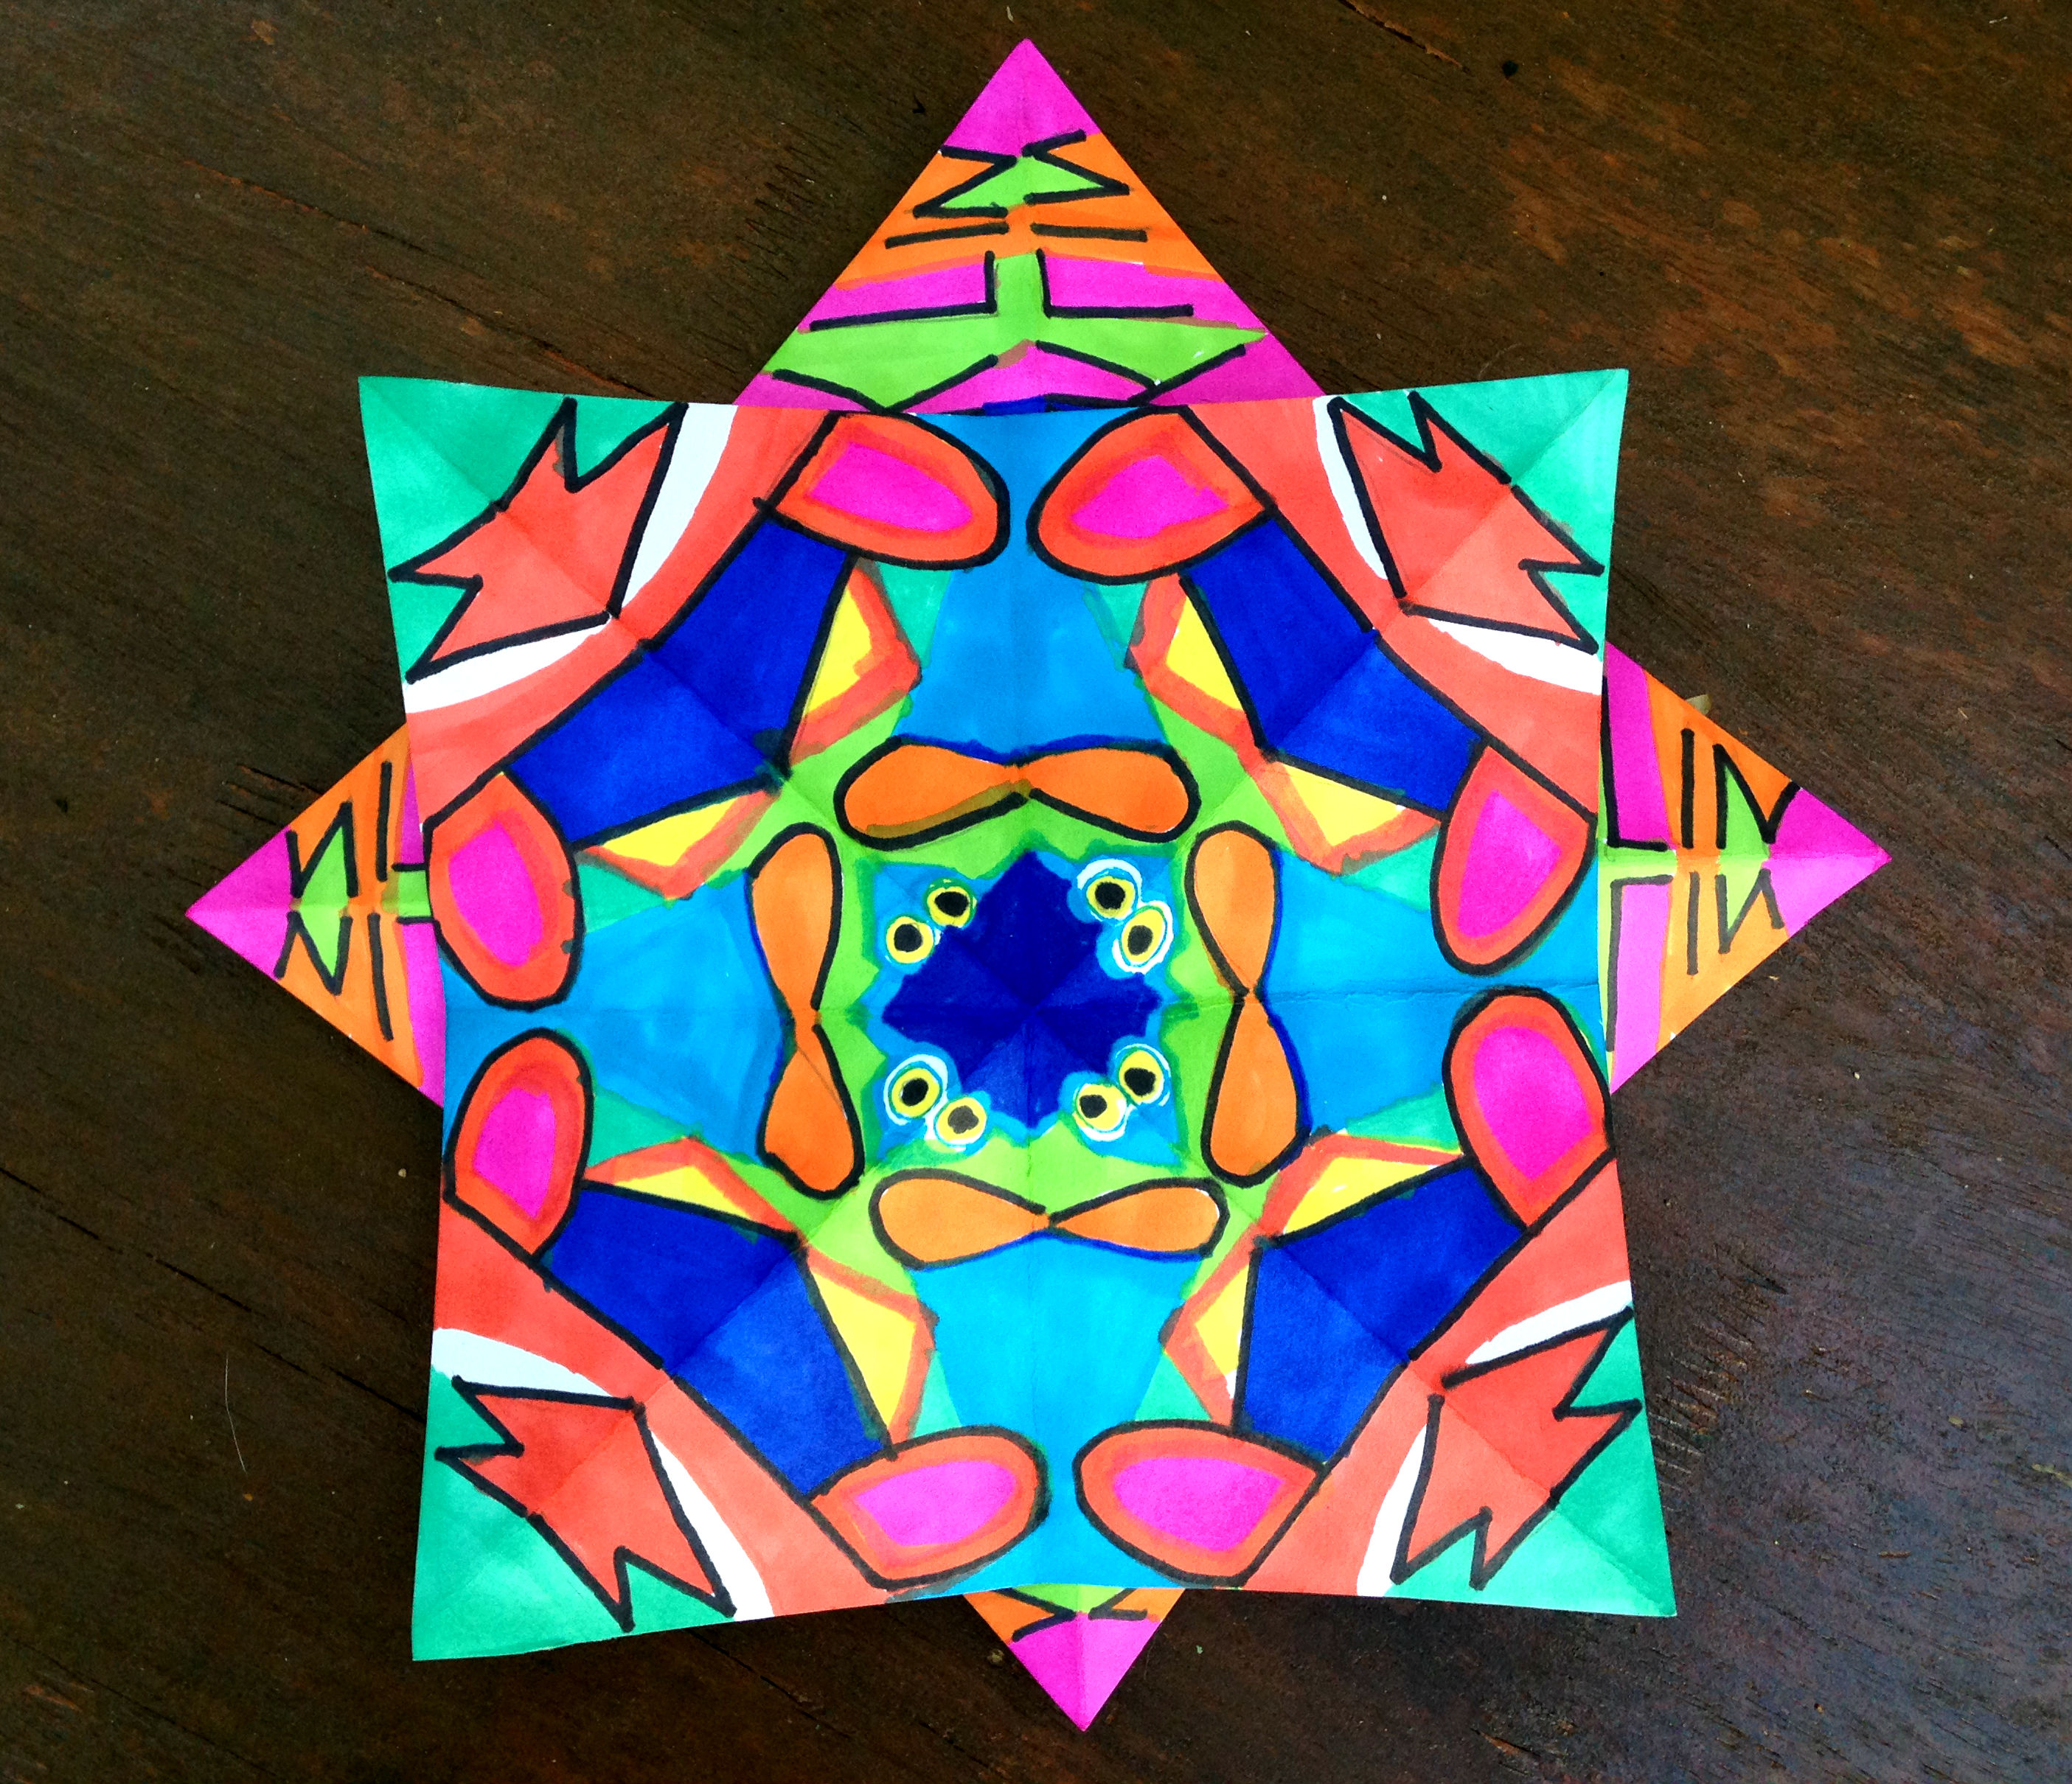 Kaleidoscope Star 2